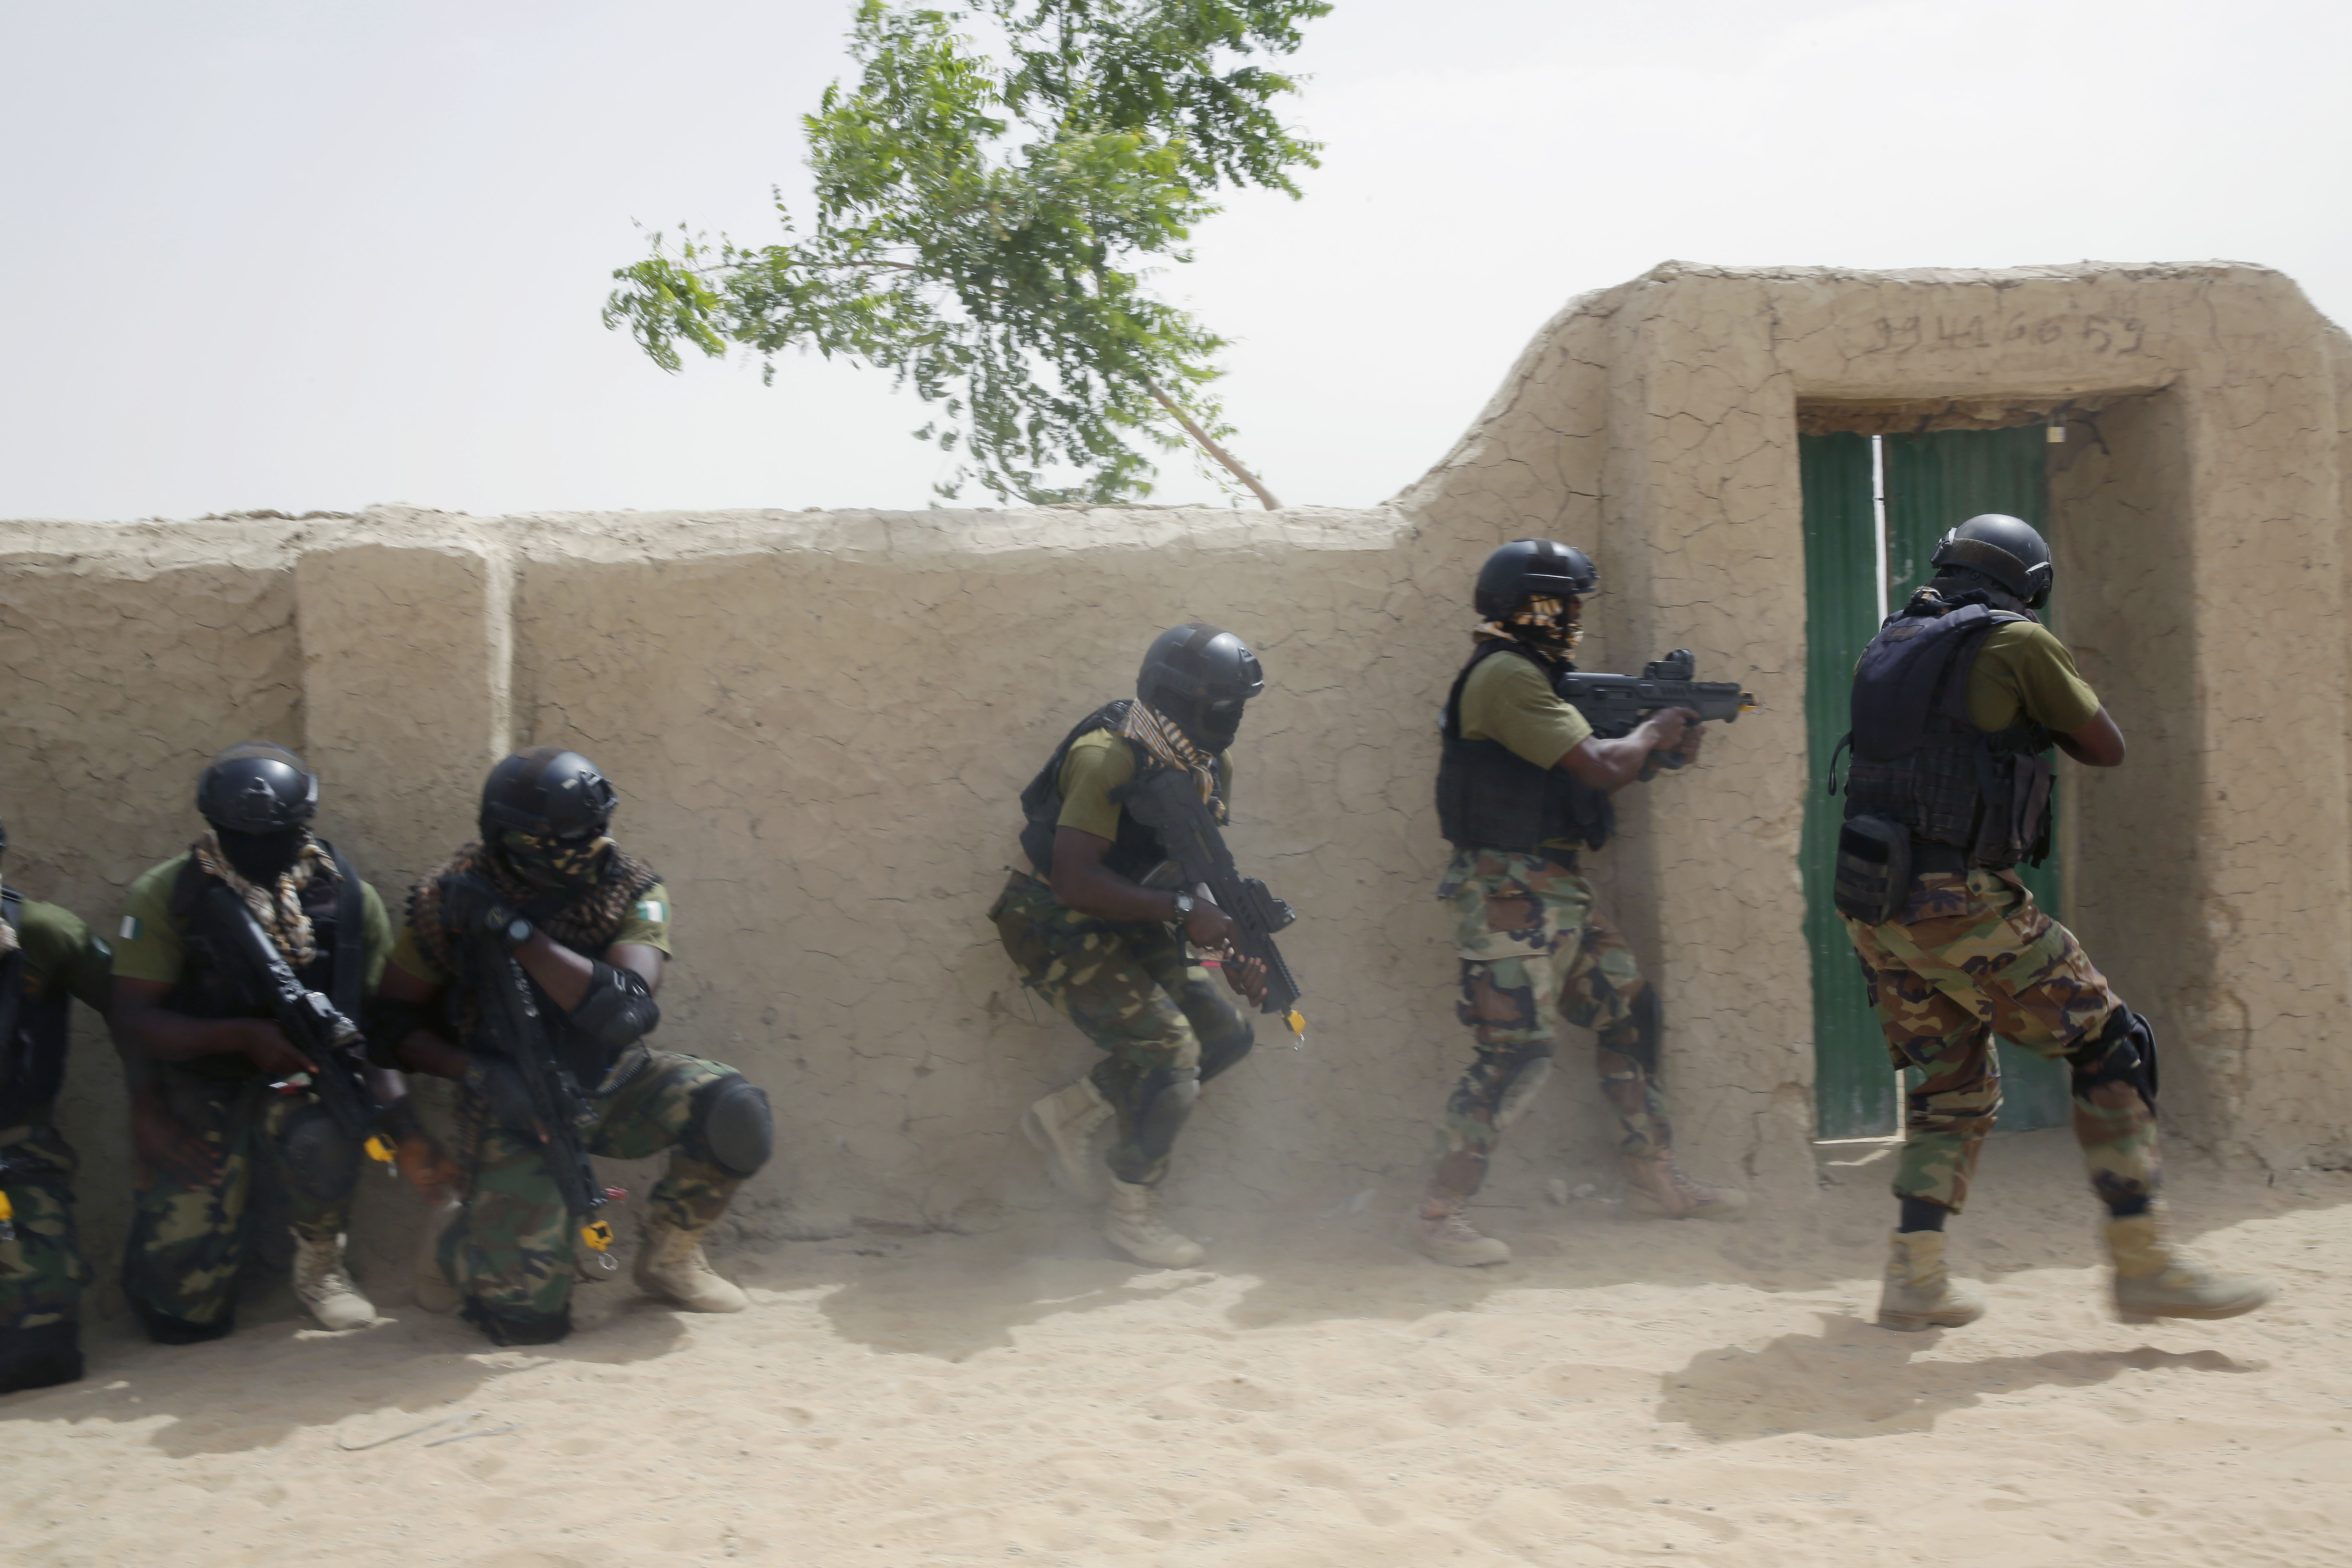 Nigerian special forces participate in an hostage rescue